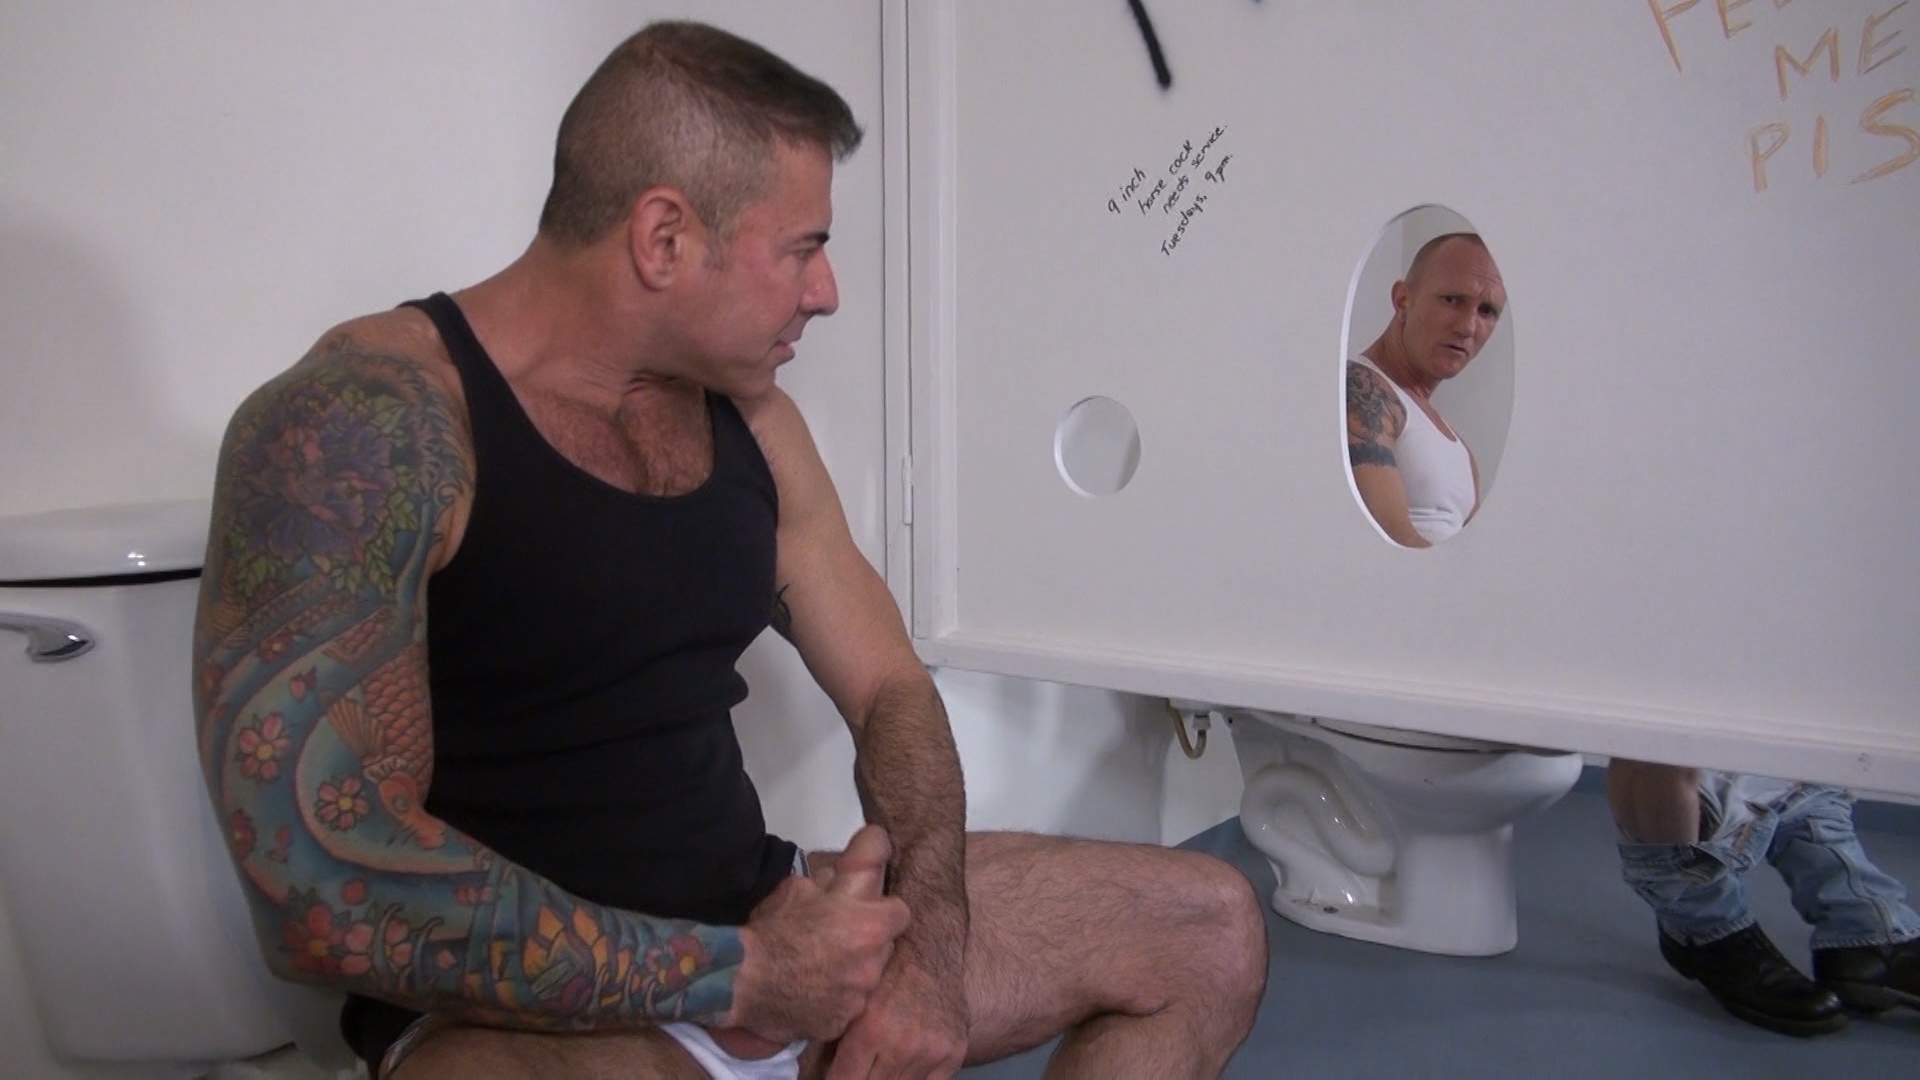 Raw-and-Rough-Jason-Mitchell-Mason-Garet-Nick-Moretti-and-Cope-Truck-Stop-Sex-Piss-play-04 Piss And Cock Play In A Truck Stop Bathroom With Four Truckers